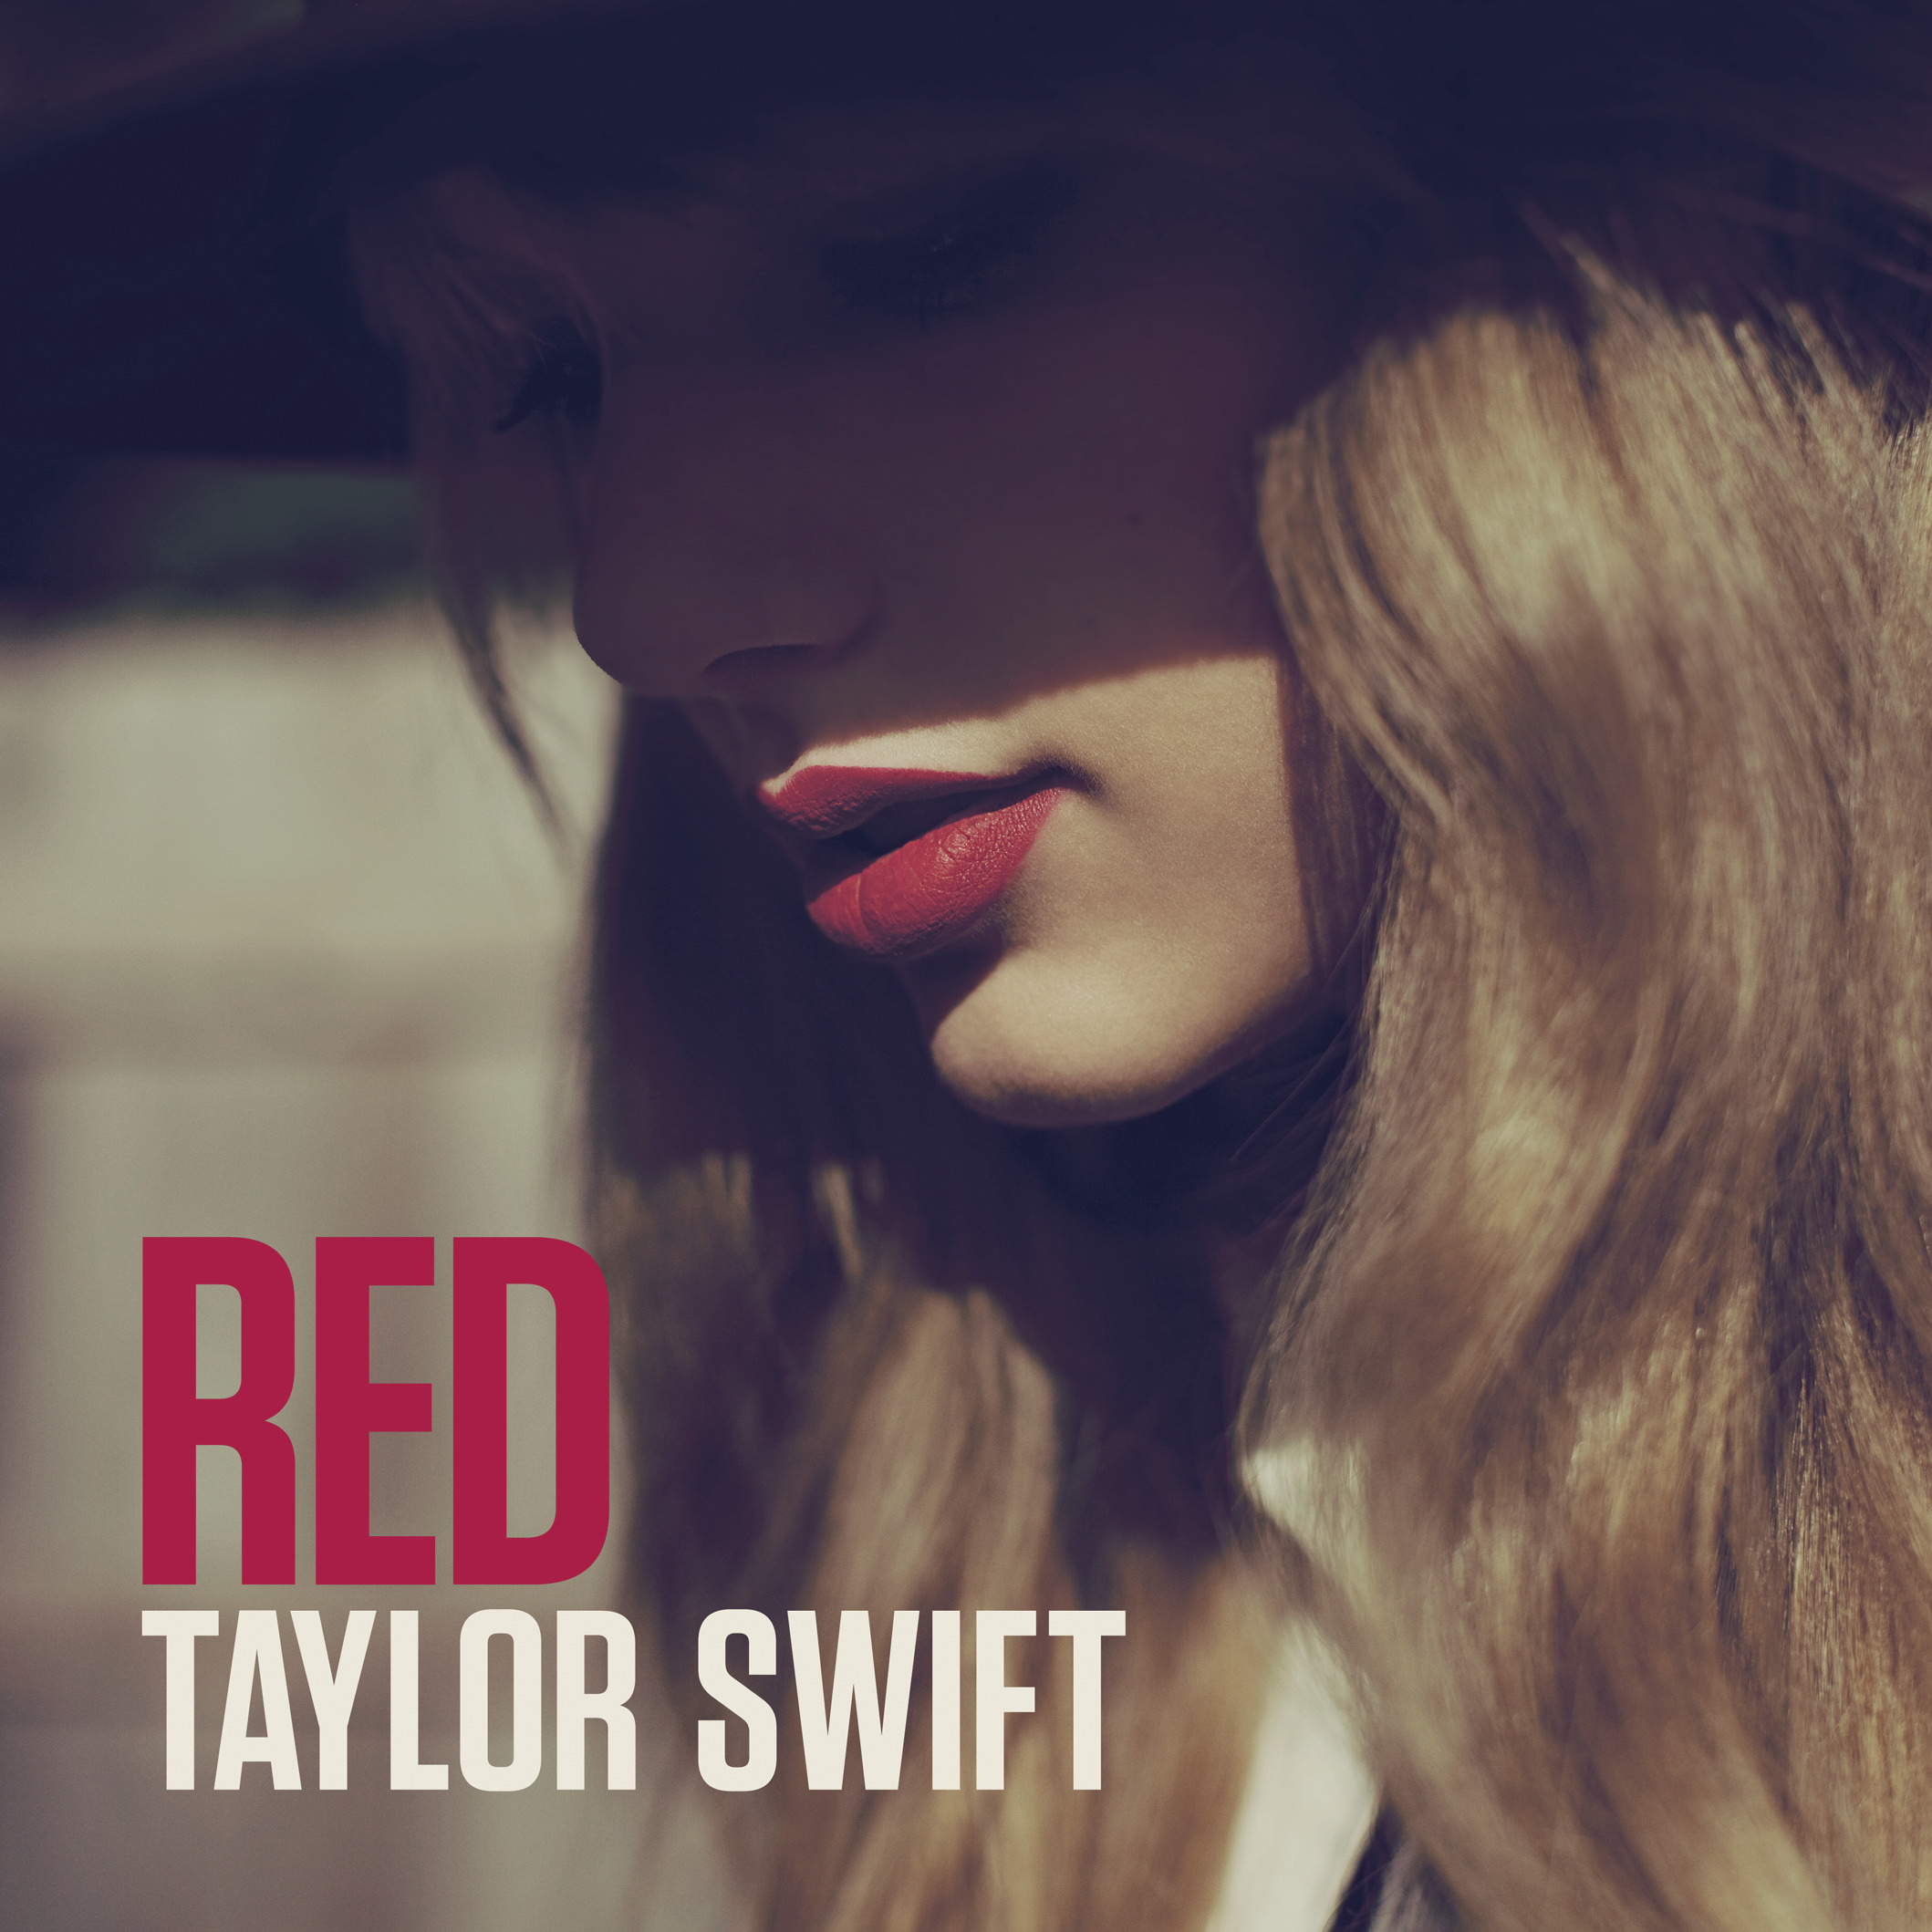 Image result for taylor swift red album cover